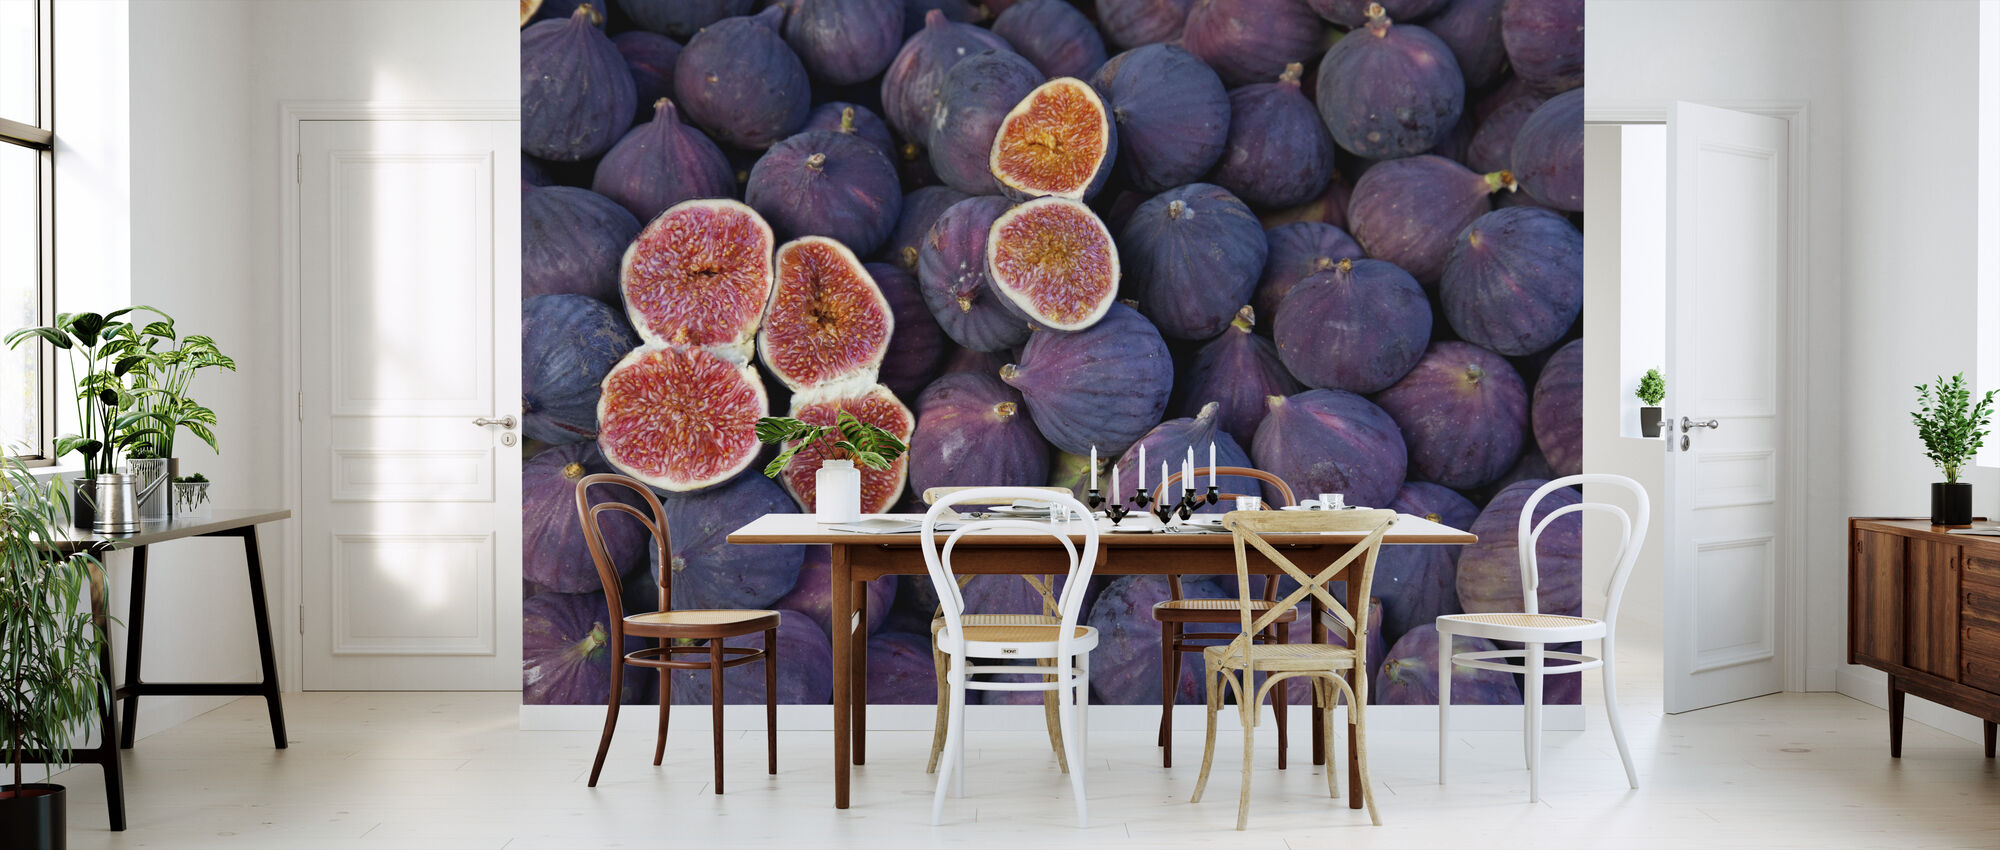 beautiful Figs - Wallpaper - Kitchen